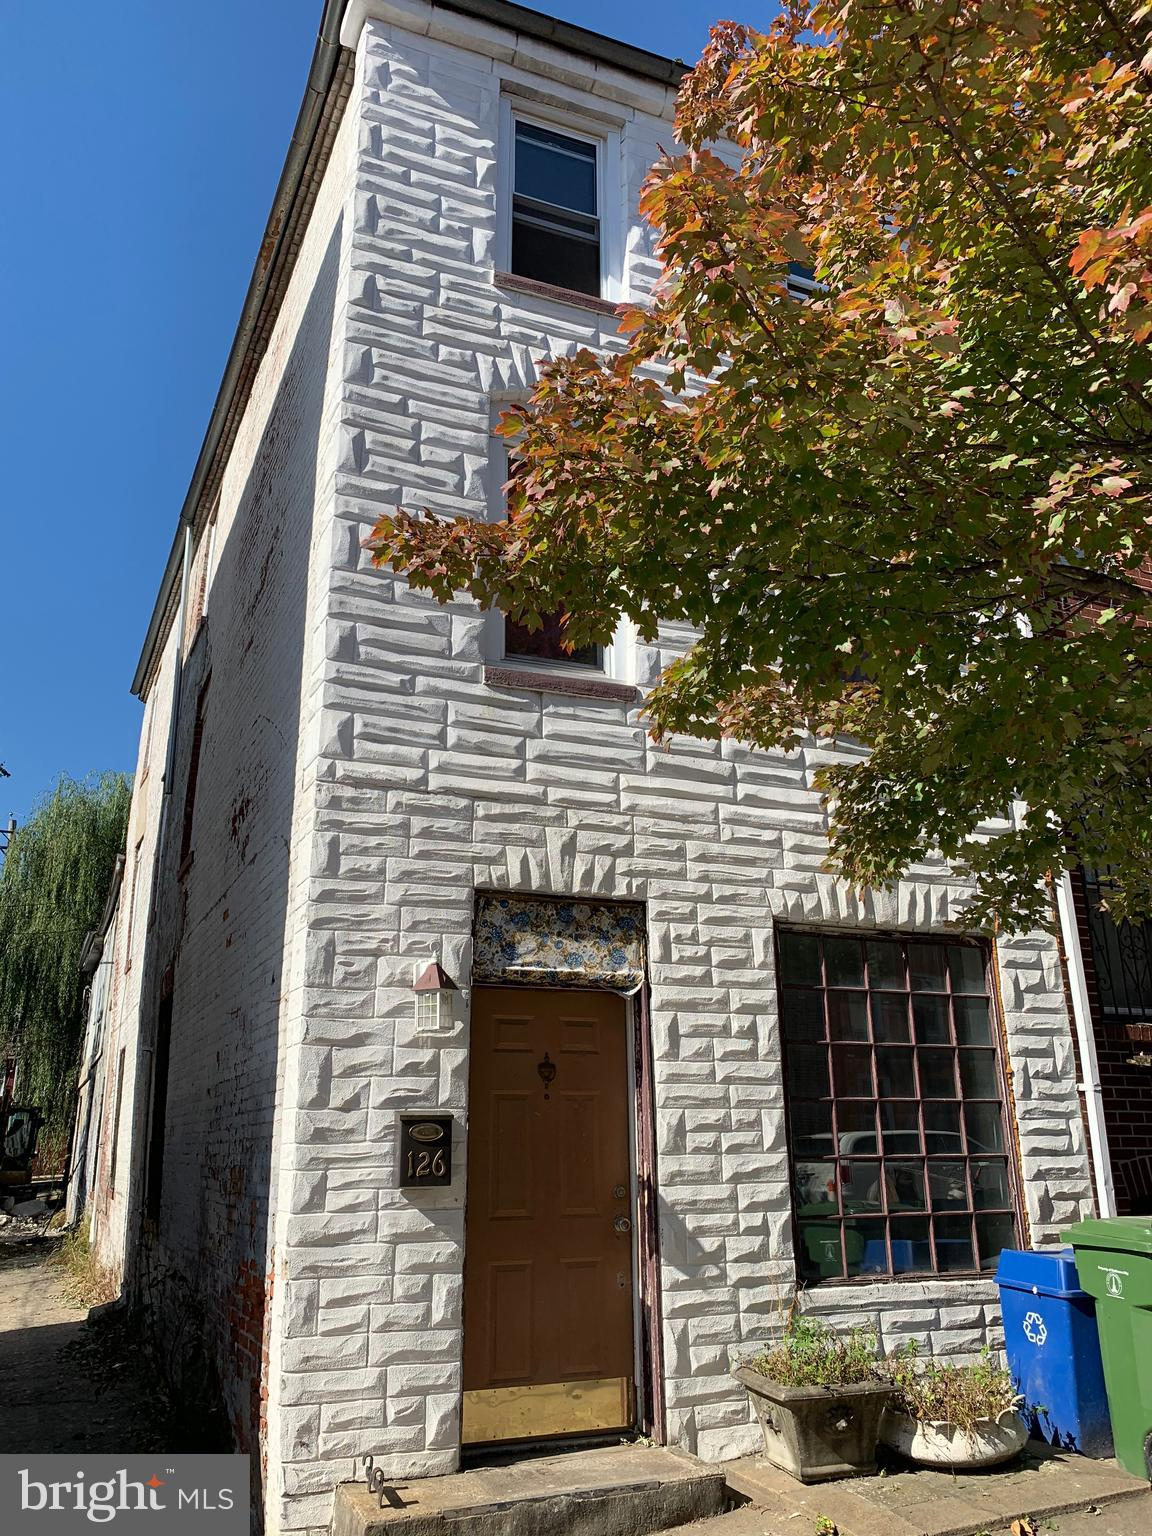 Great opportunity to own this charming home located walking distance from the B&O railroad museum and Hollins Market!  2300+ sq. ft. of living space. Hardwood floors, exposed brick, room for a roof top deck, make this home your dream home. Close to schools, shopping and transportation.